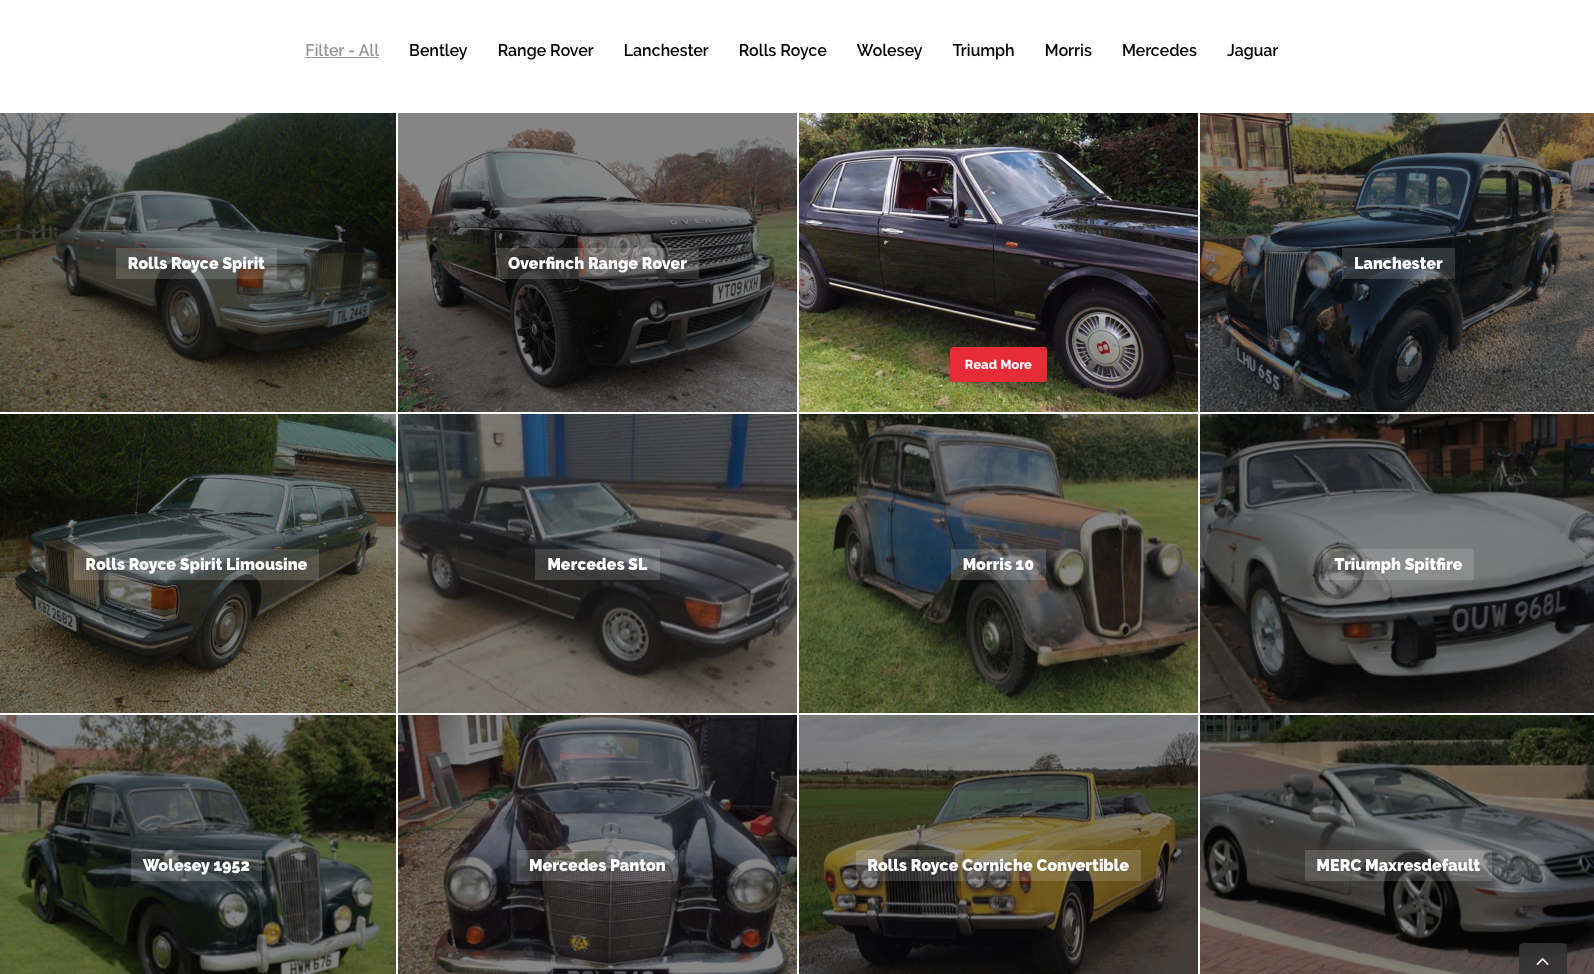 Cool pool cars website design